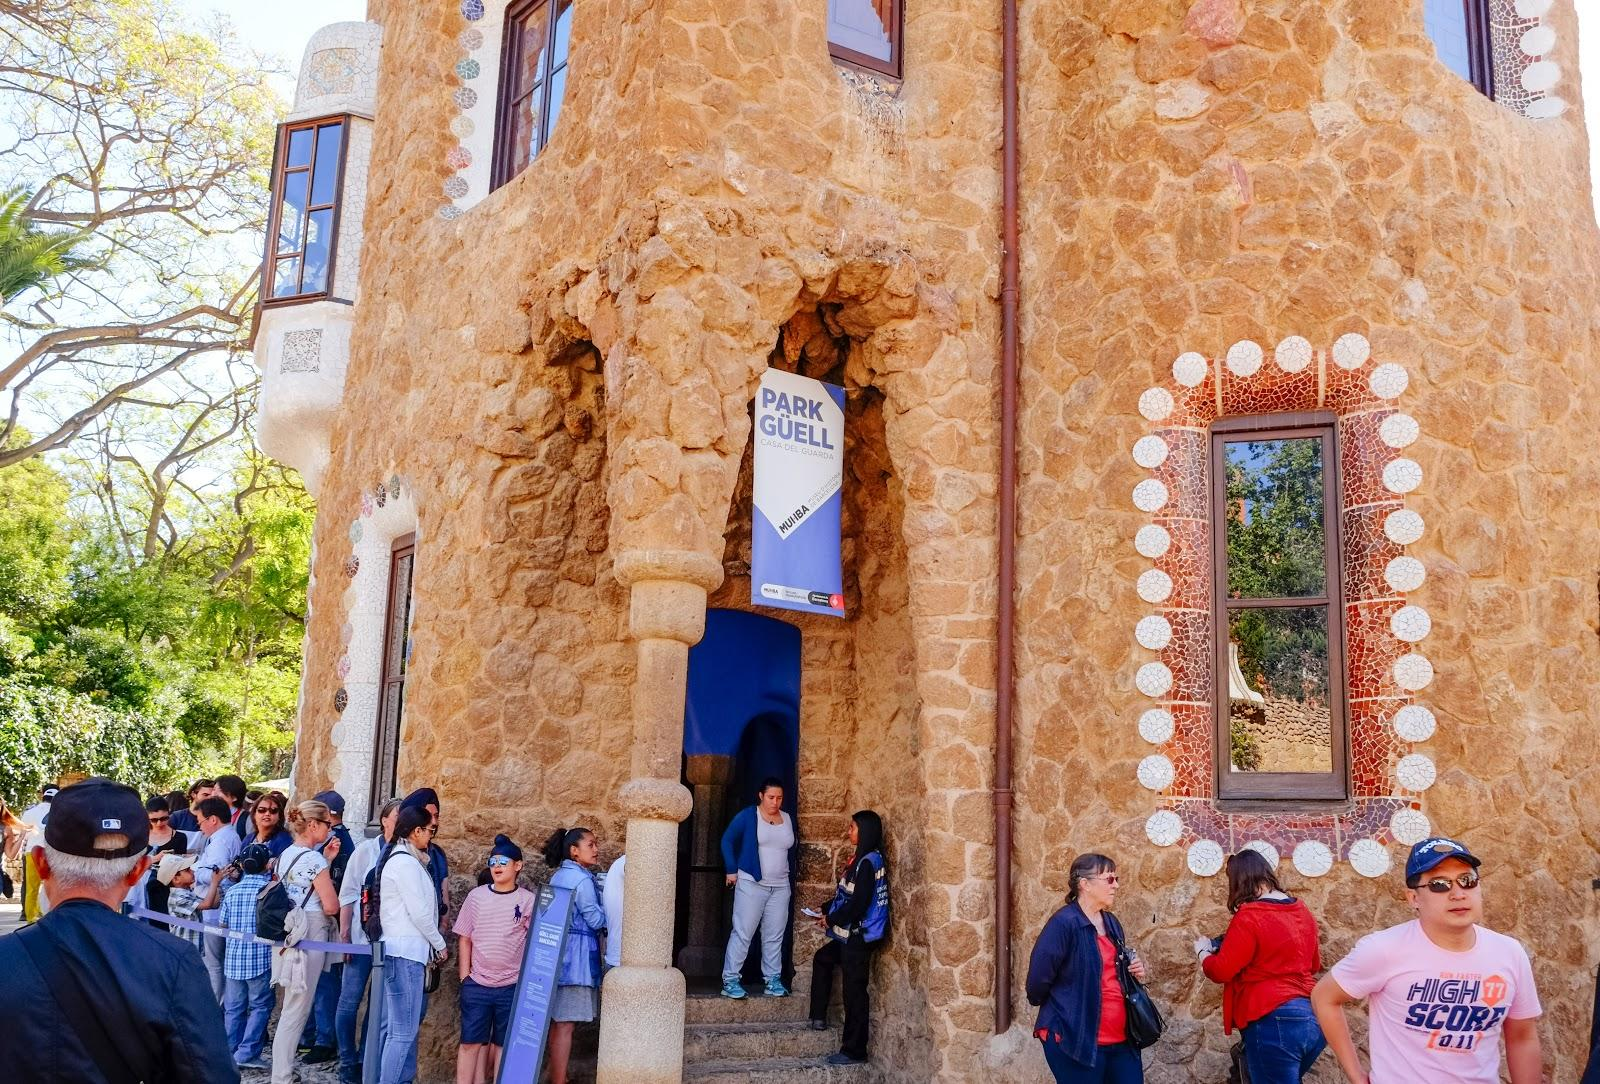 Long queues are a common sight when visiting Park Guell. The best time to visit is in the morning.